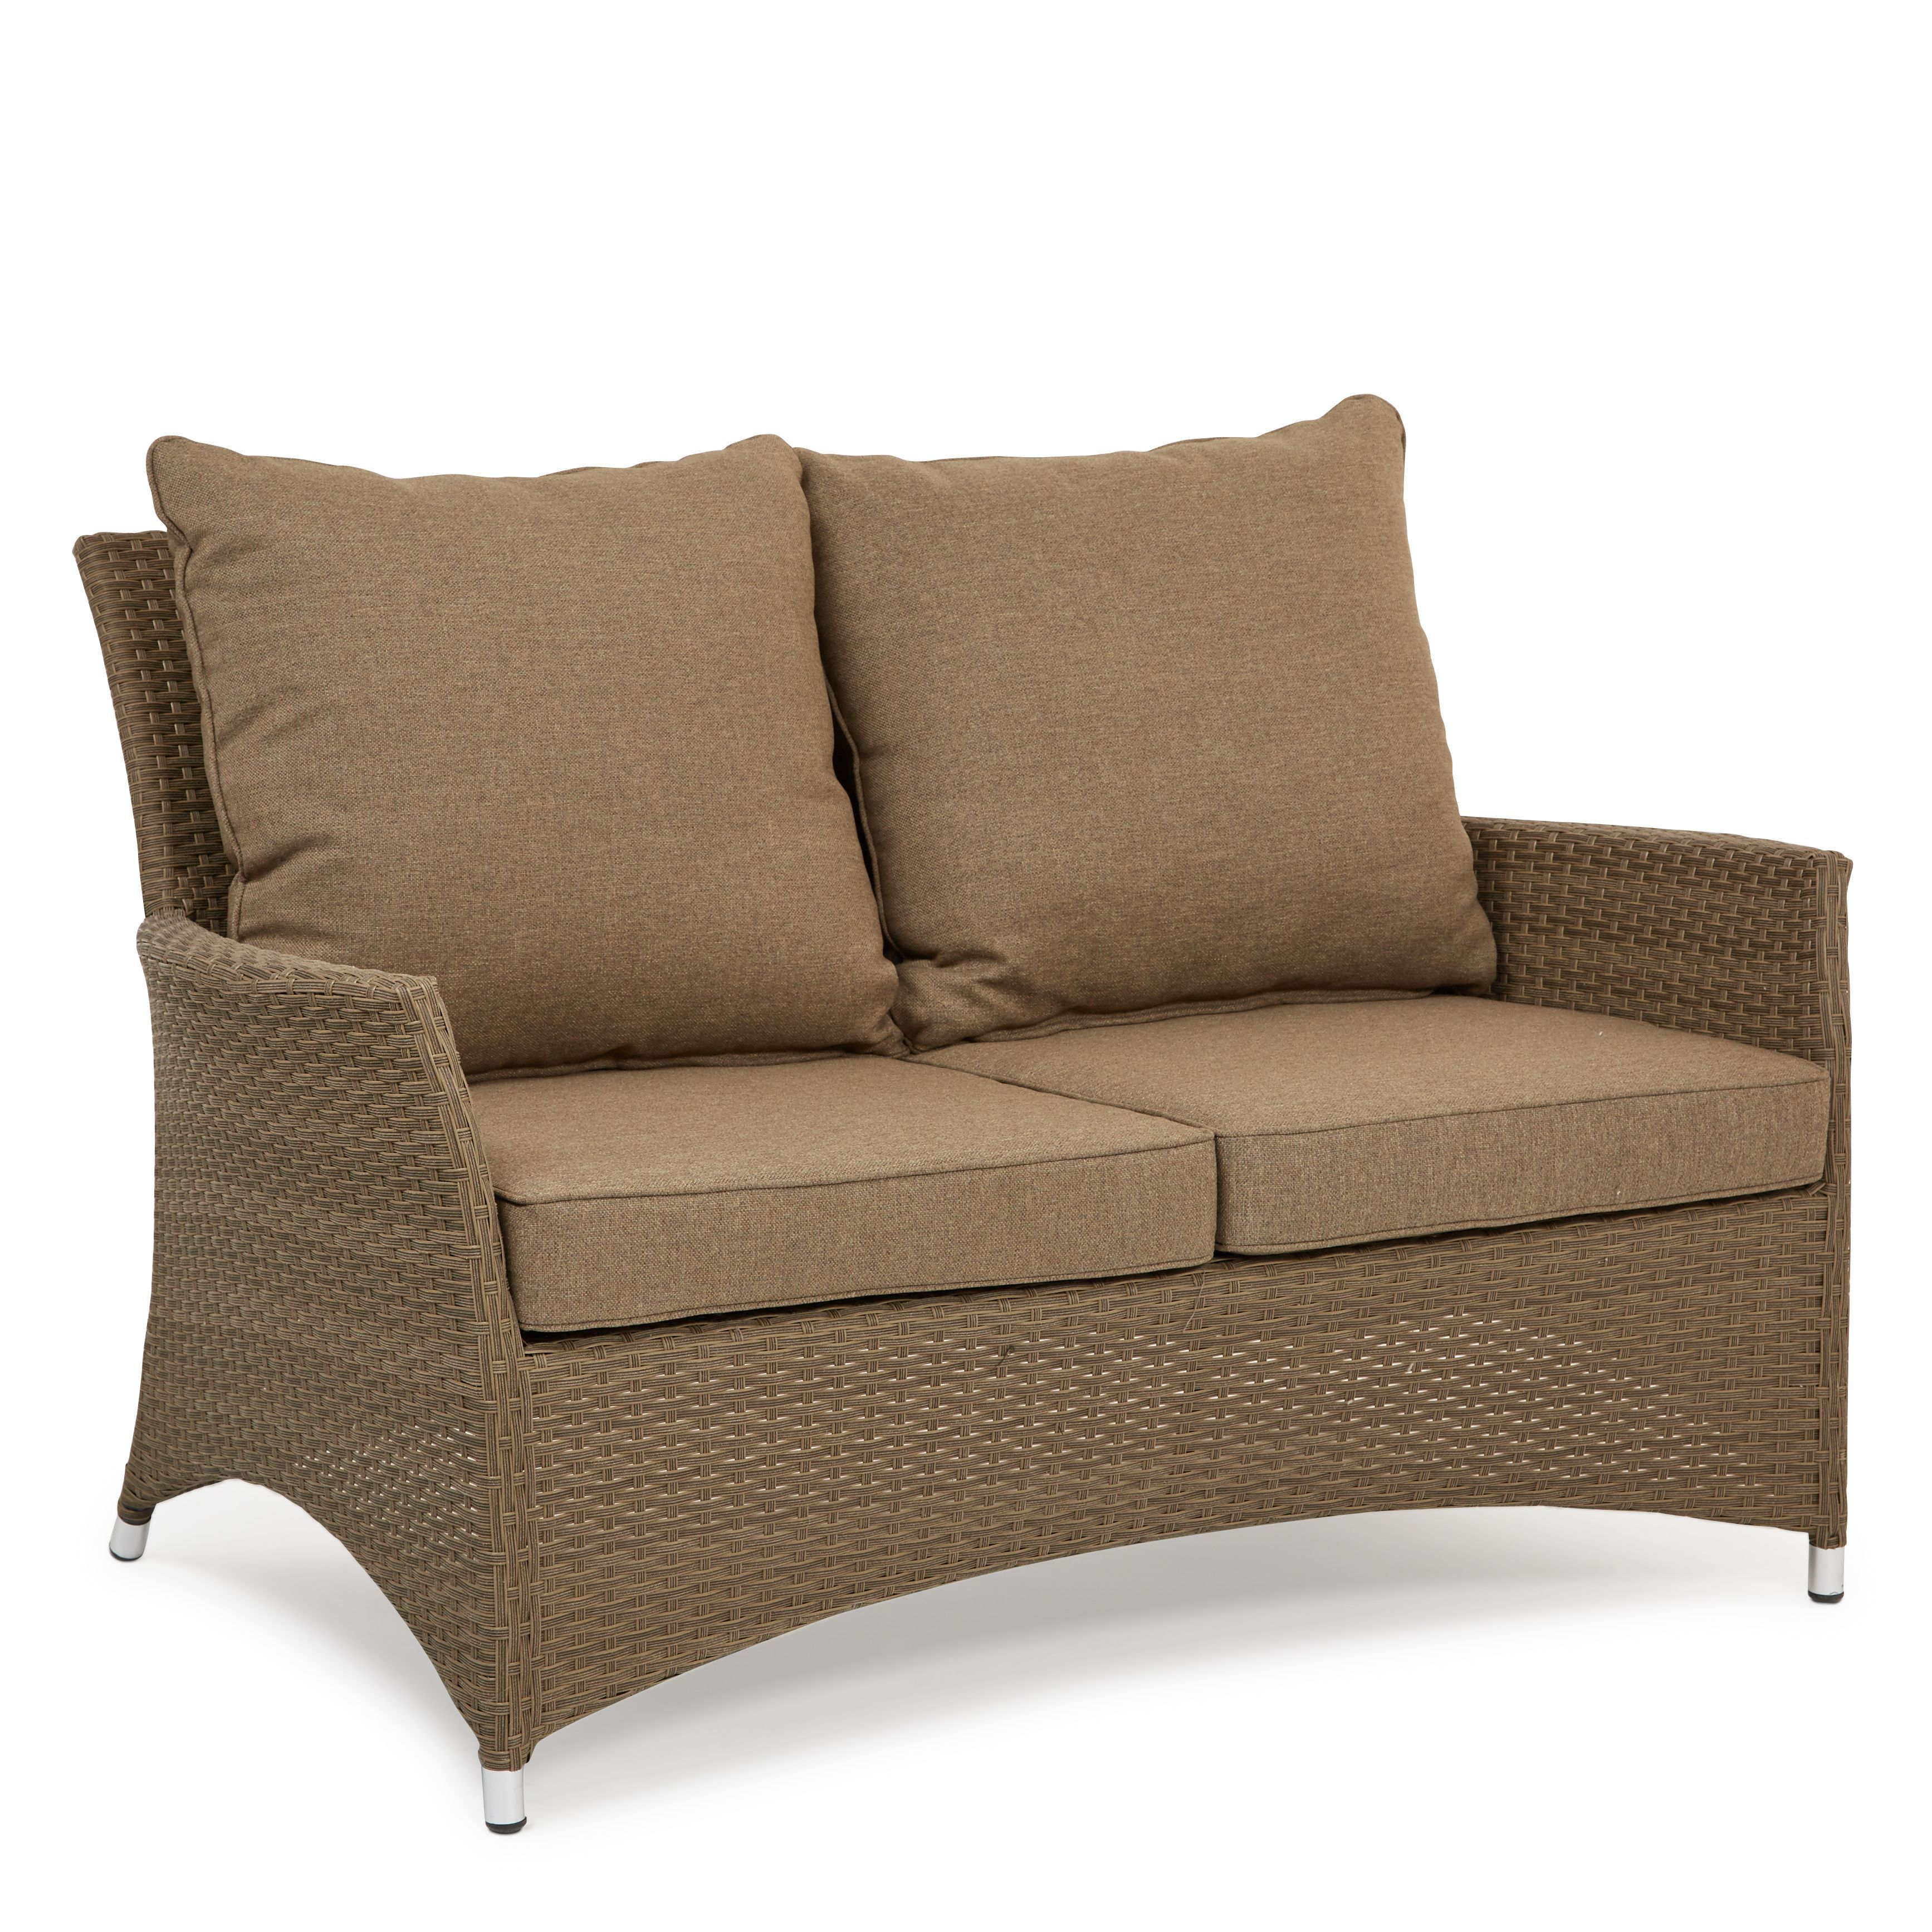 Rattan Effect Recliner Sofa Henley Sofa Henley Sofa Bed Factory Thesofa